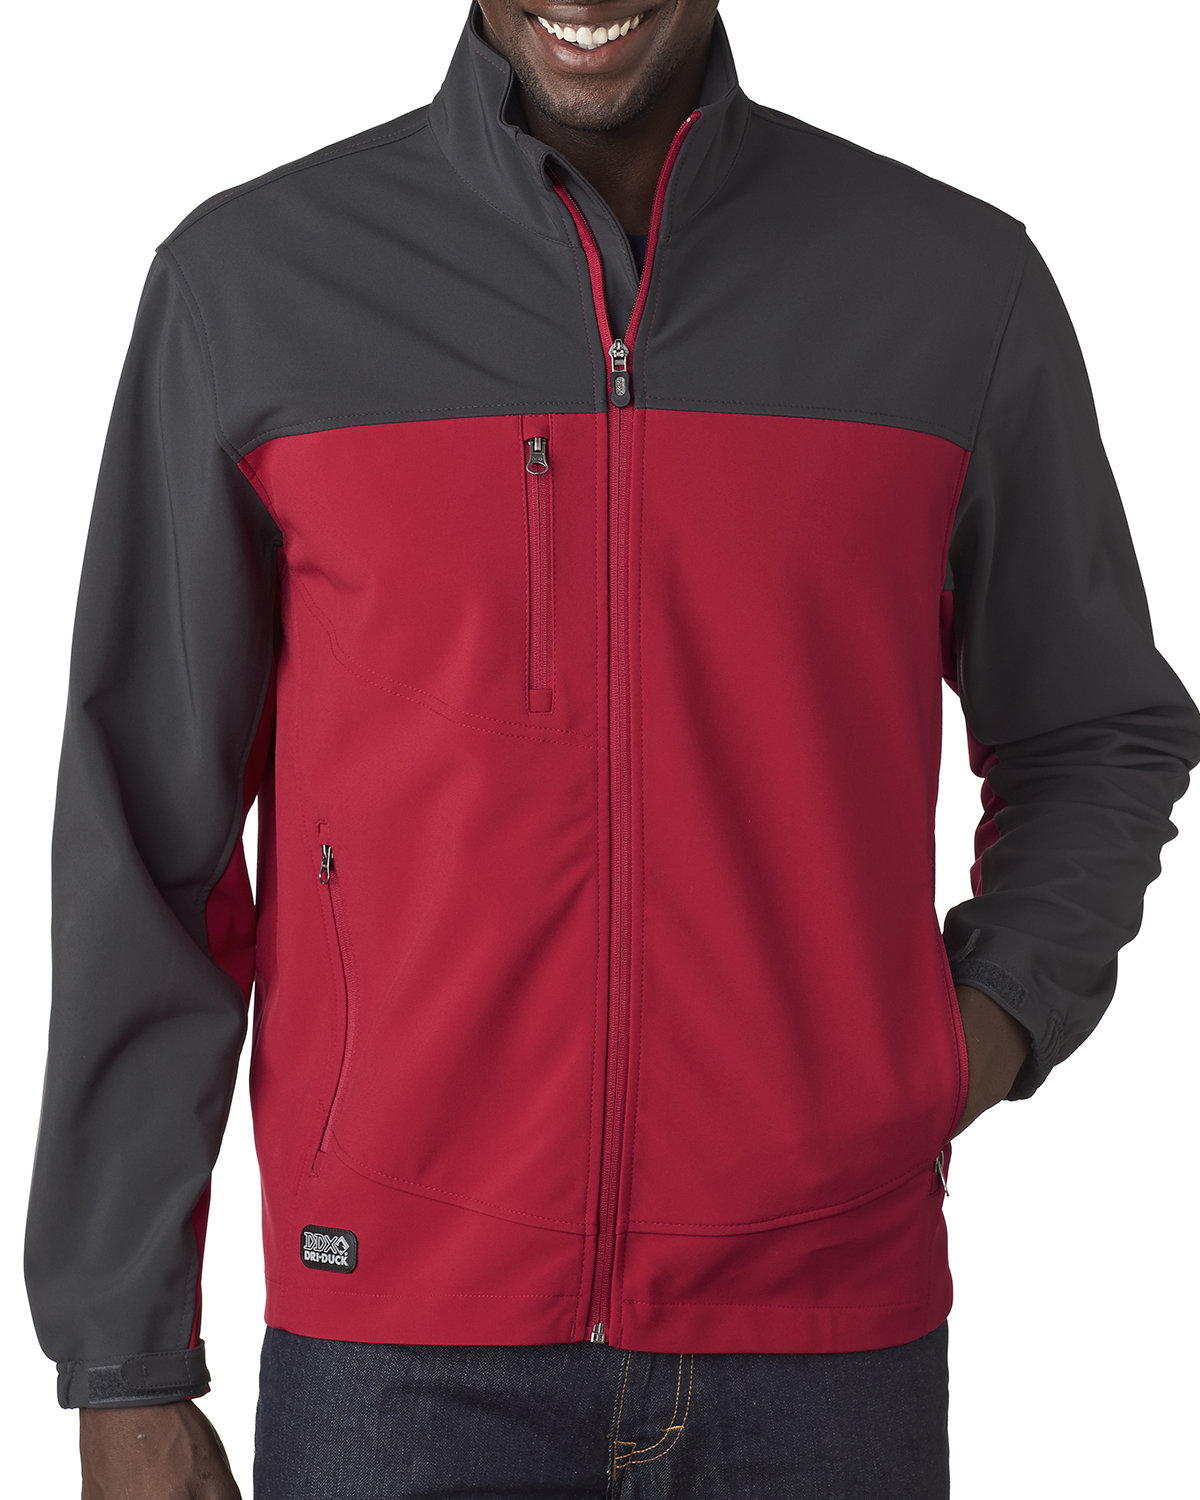 Dri Duck Men's Poly Spandex Motion Softshell Jacket RED/ CHARCOAL